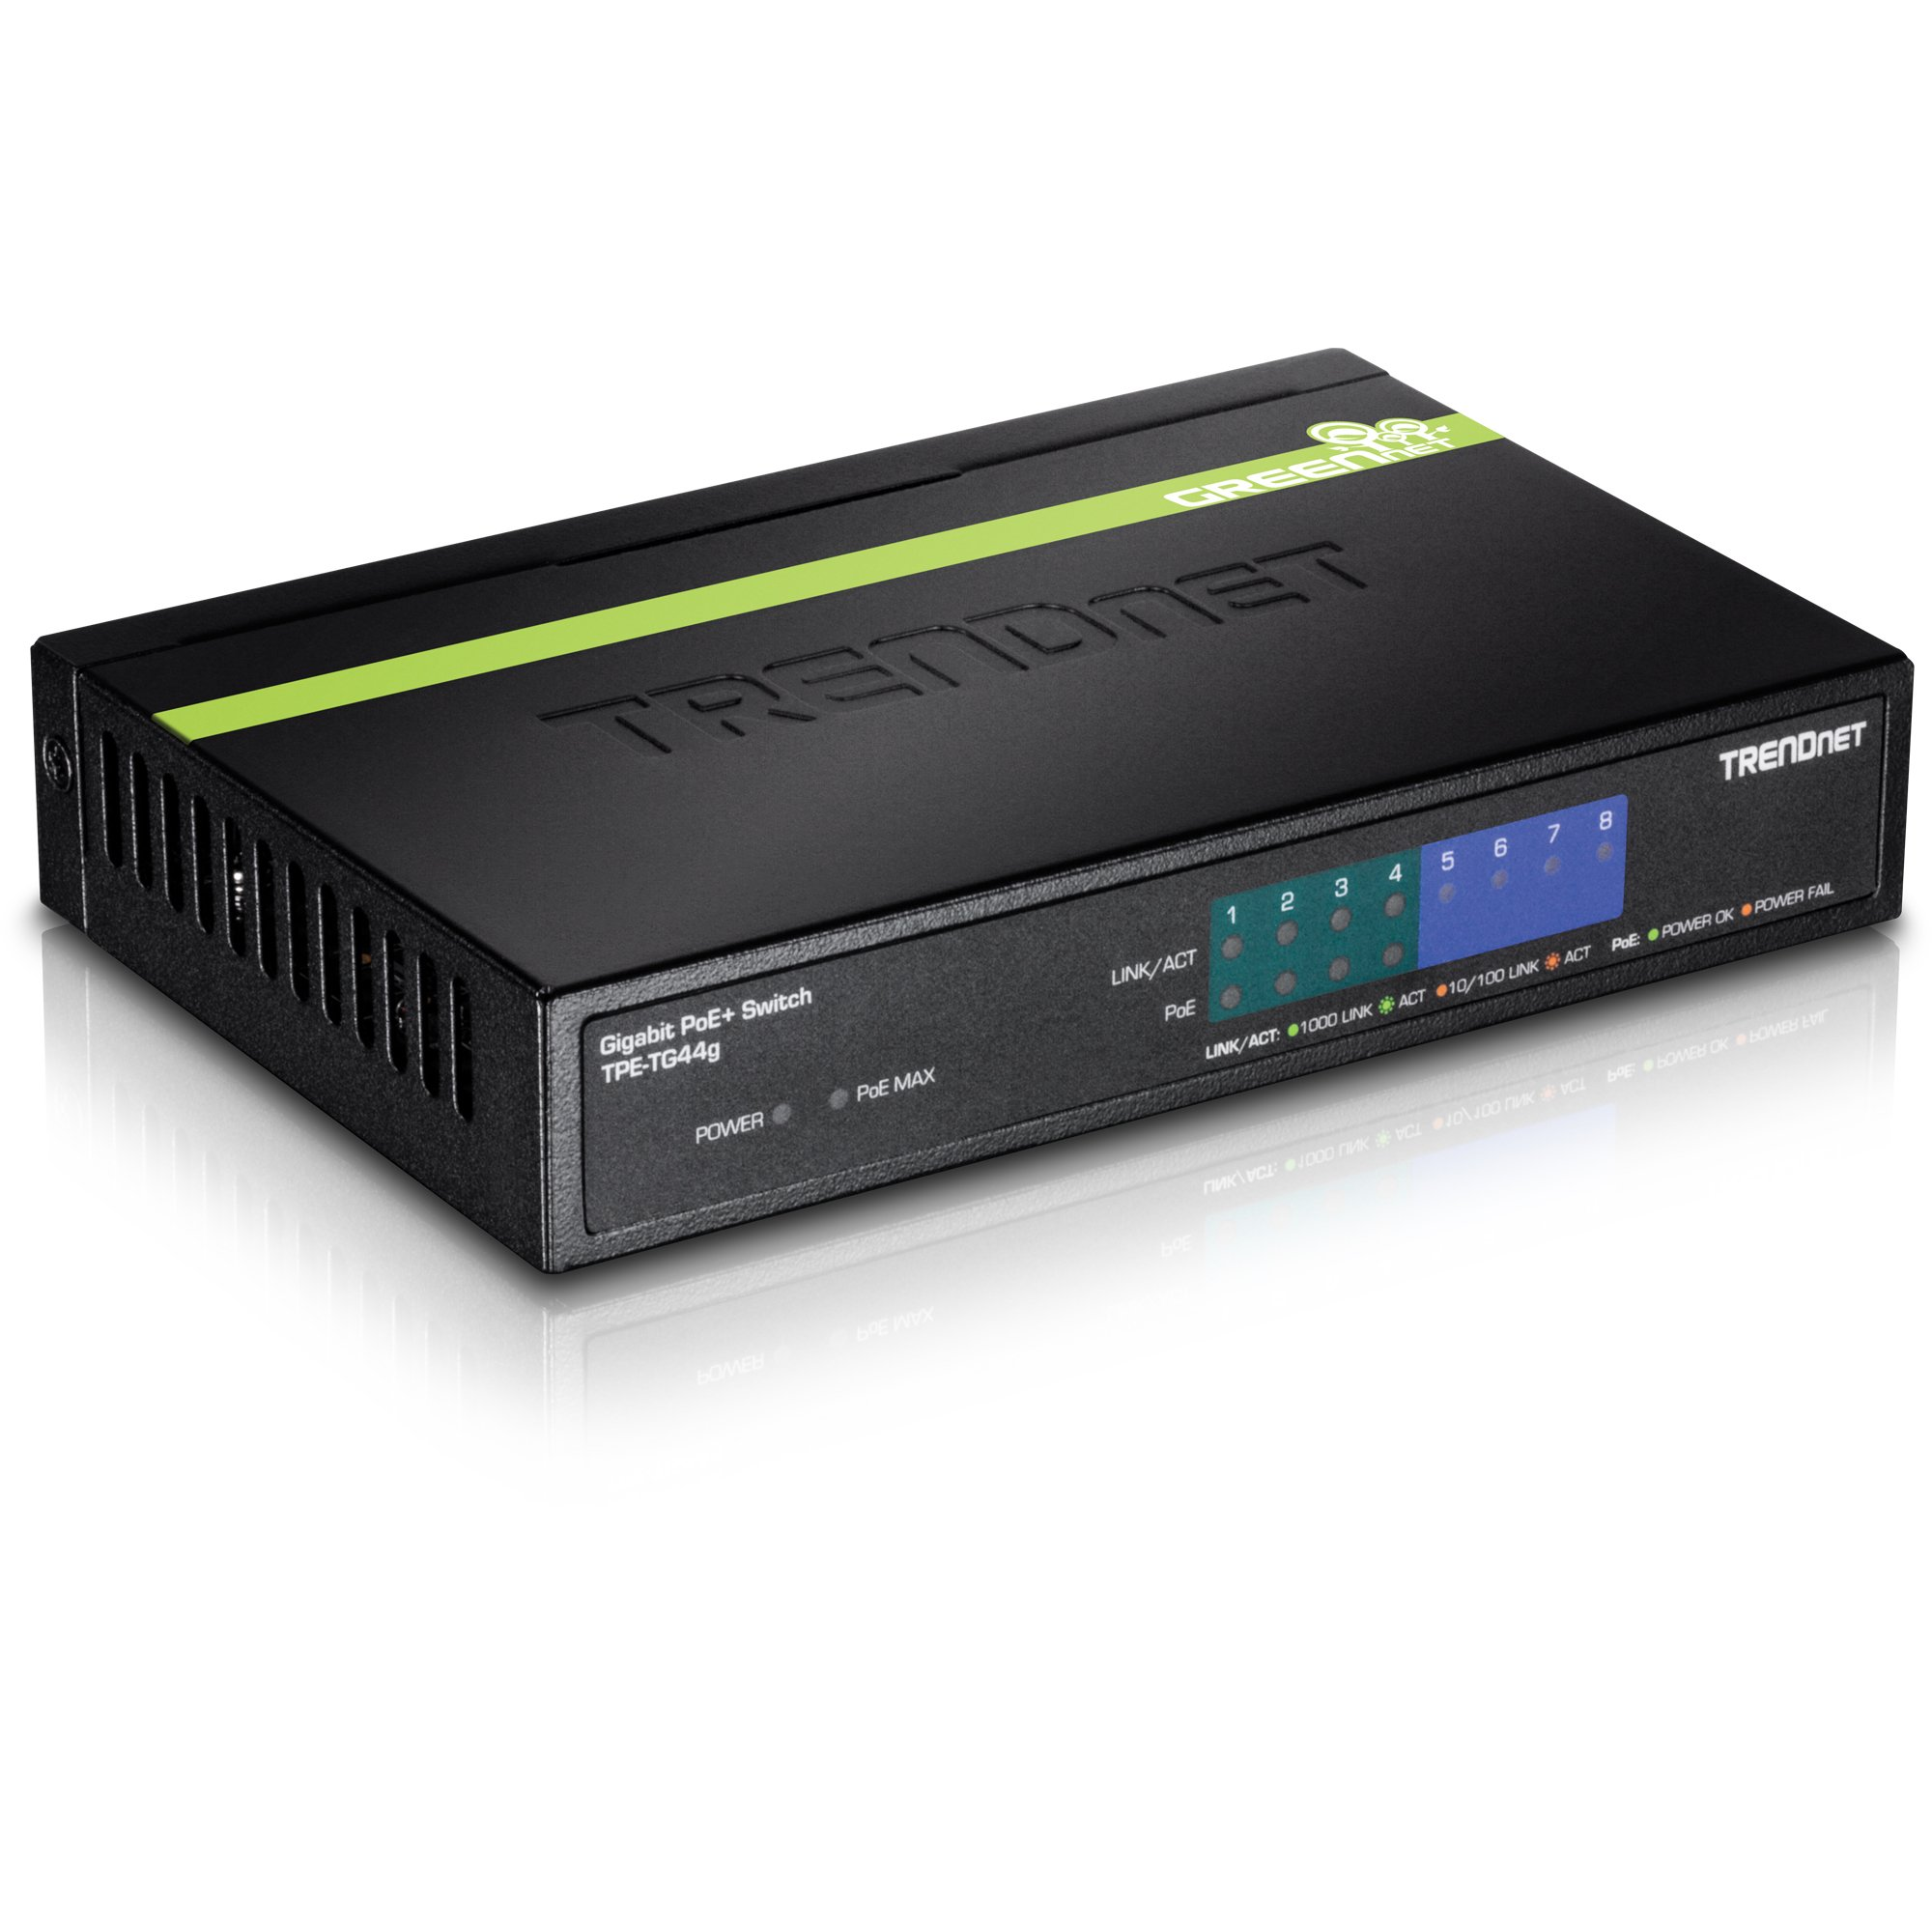 TRENDnet 8-Port Gigabit PoE+ Switch, 4 x Gigabit PoE/PoE+ Ports (Up to 30 Watts/Port), 4 x Gigabit Ports, 61.6W PoE Power Budget, 16 Gbps Switching Capacity, Lifetime Protection, TPE-TG44G